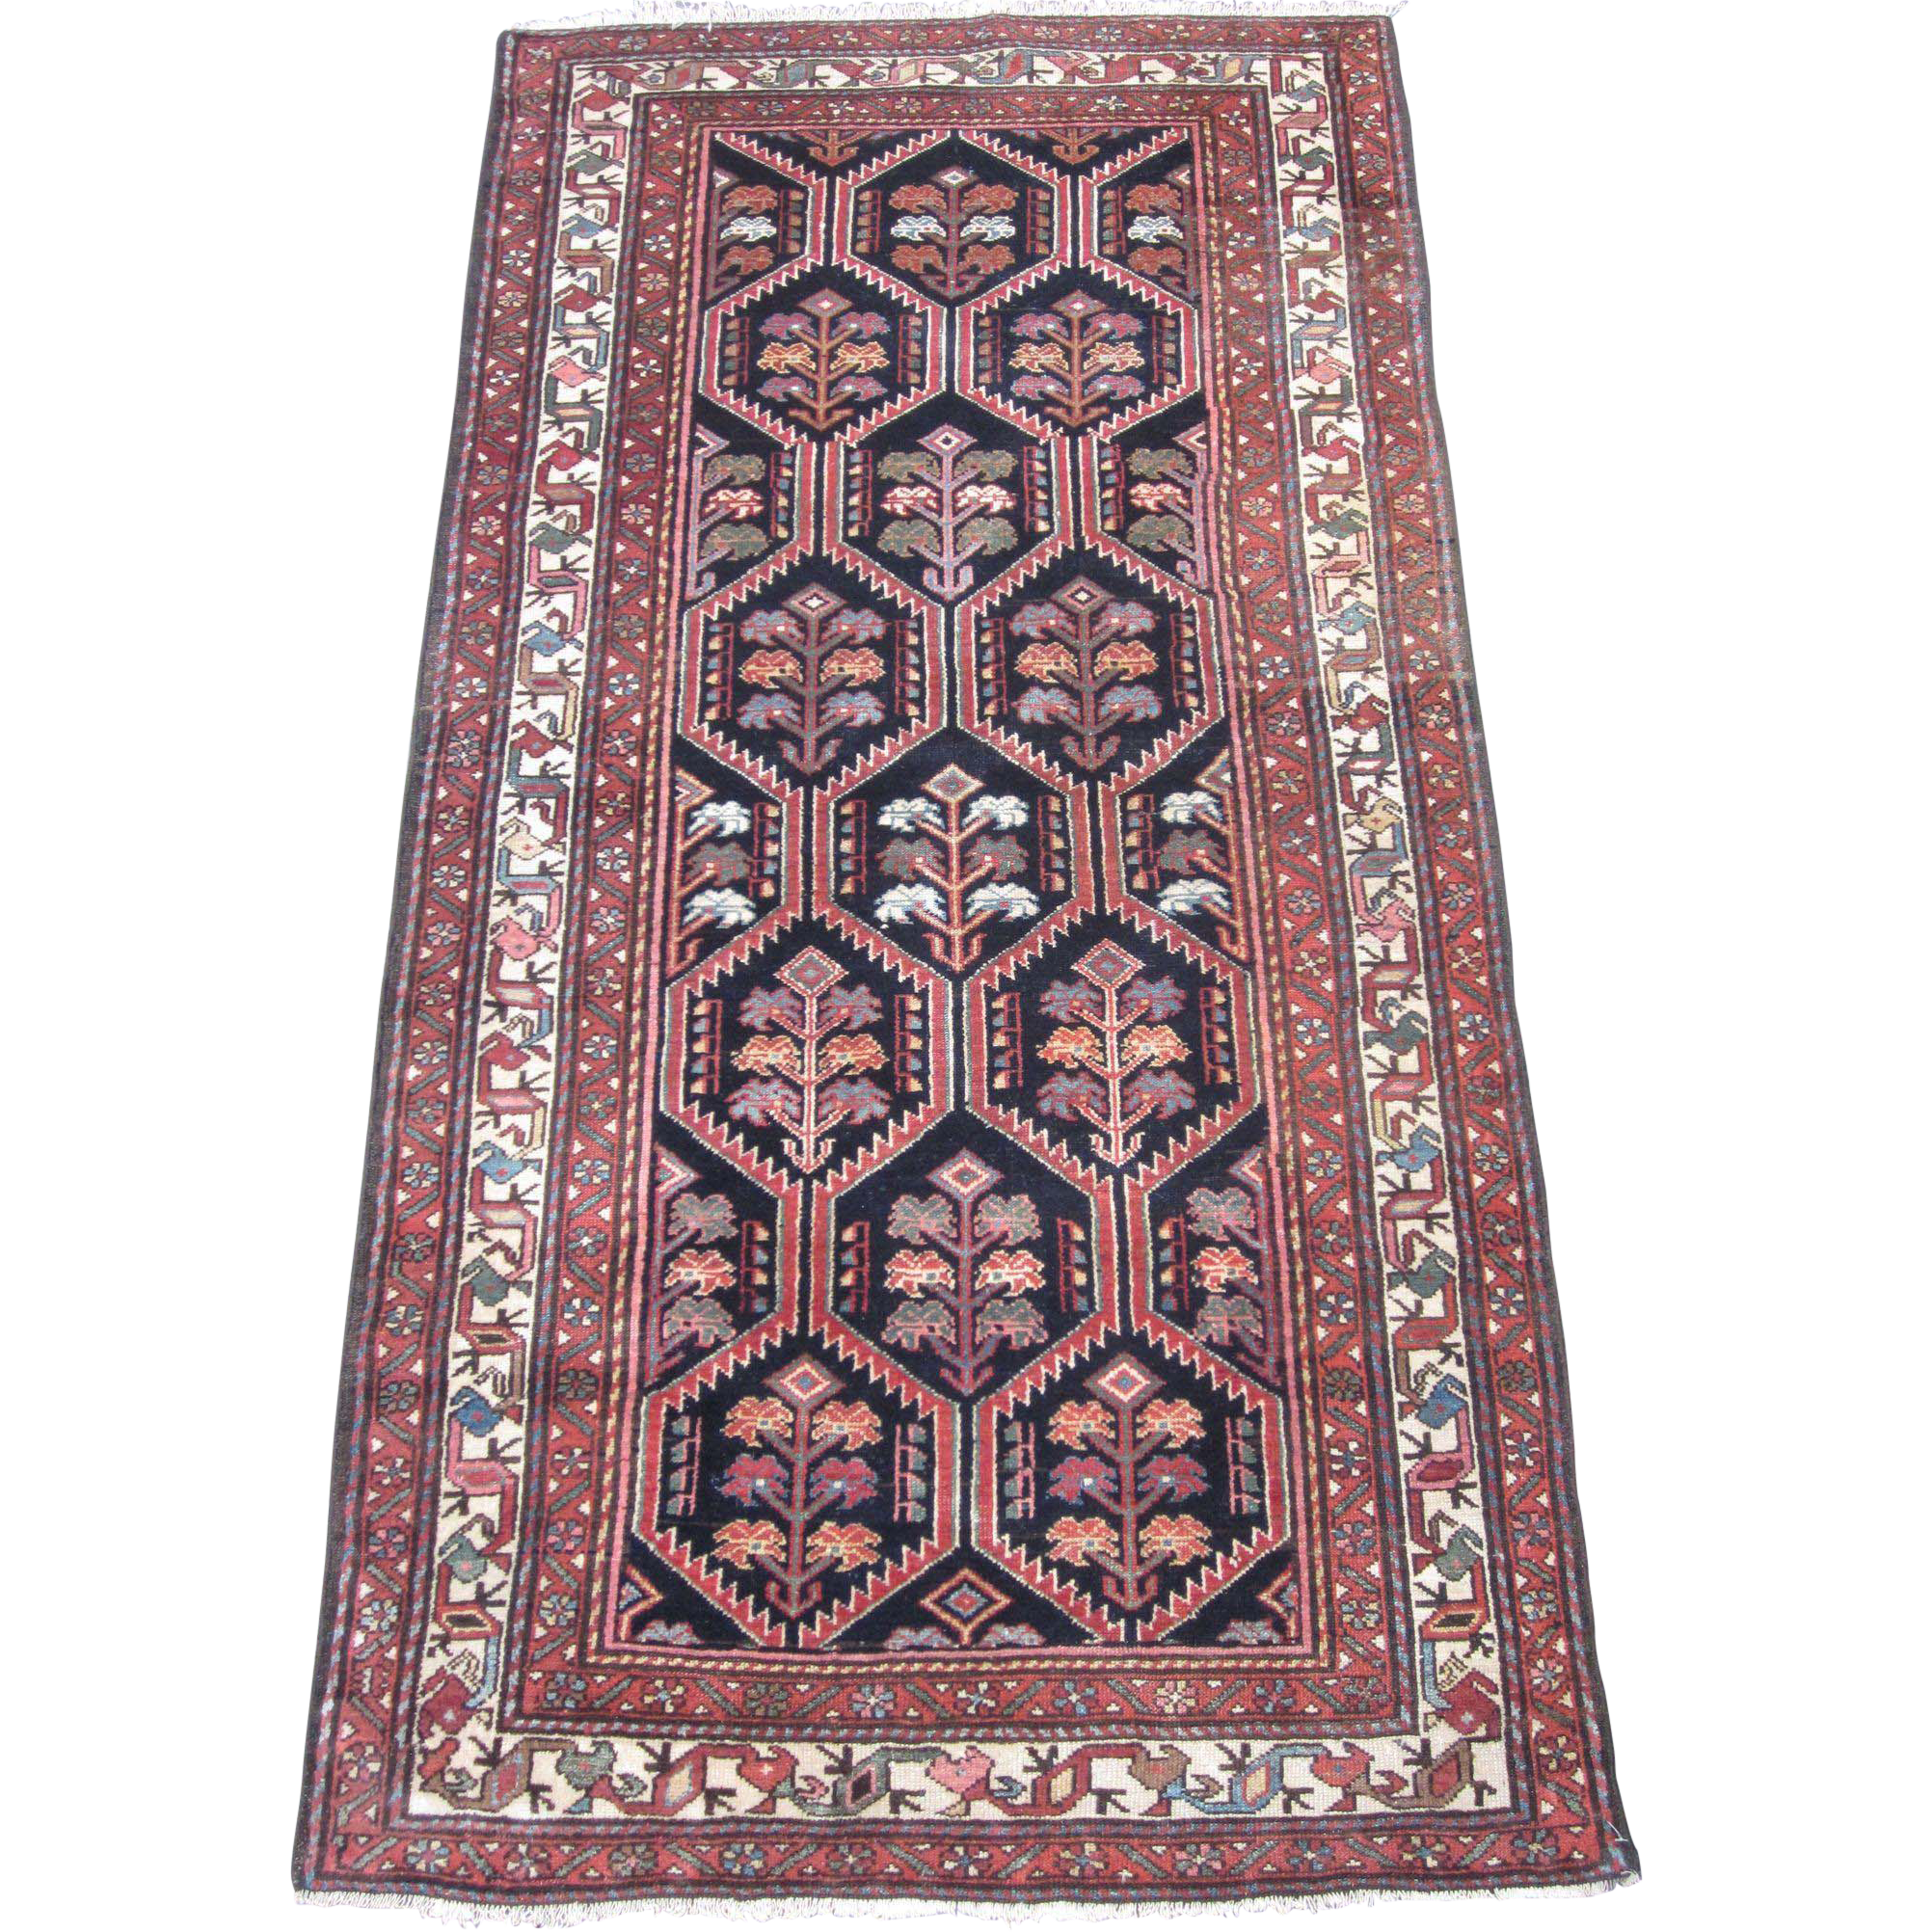 Western Ma Rugs: Antique Malayer Oriental Rug , Western Persia ,Early 20th